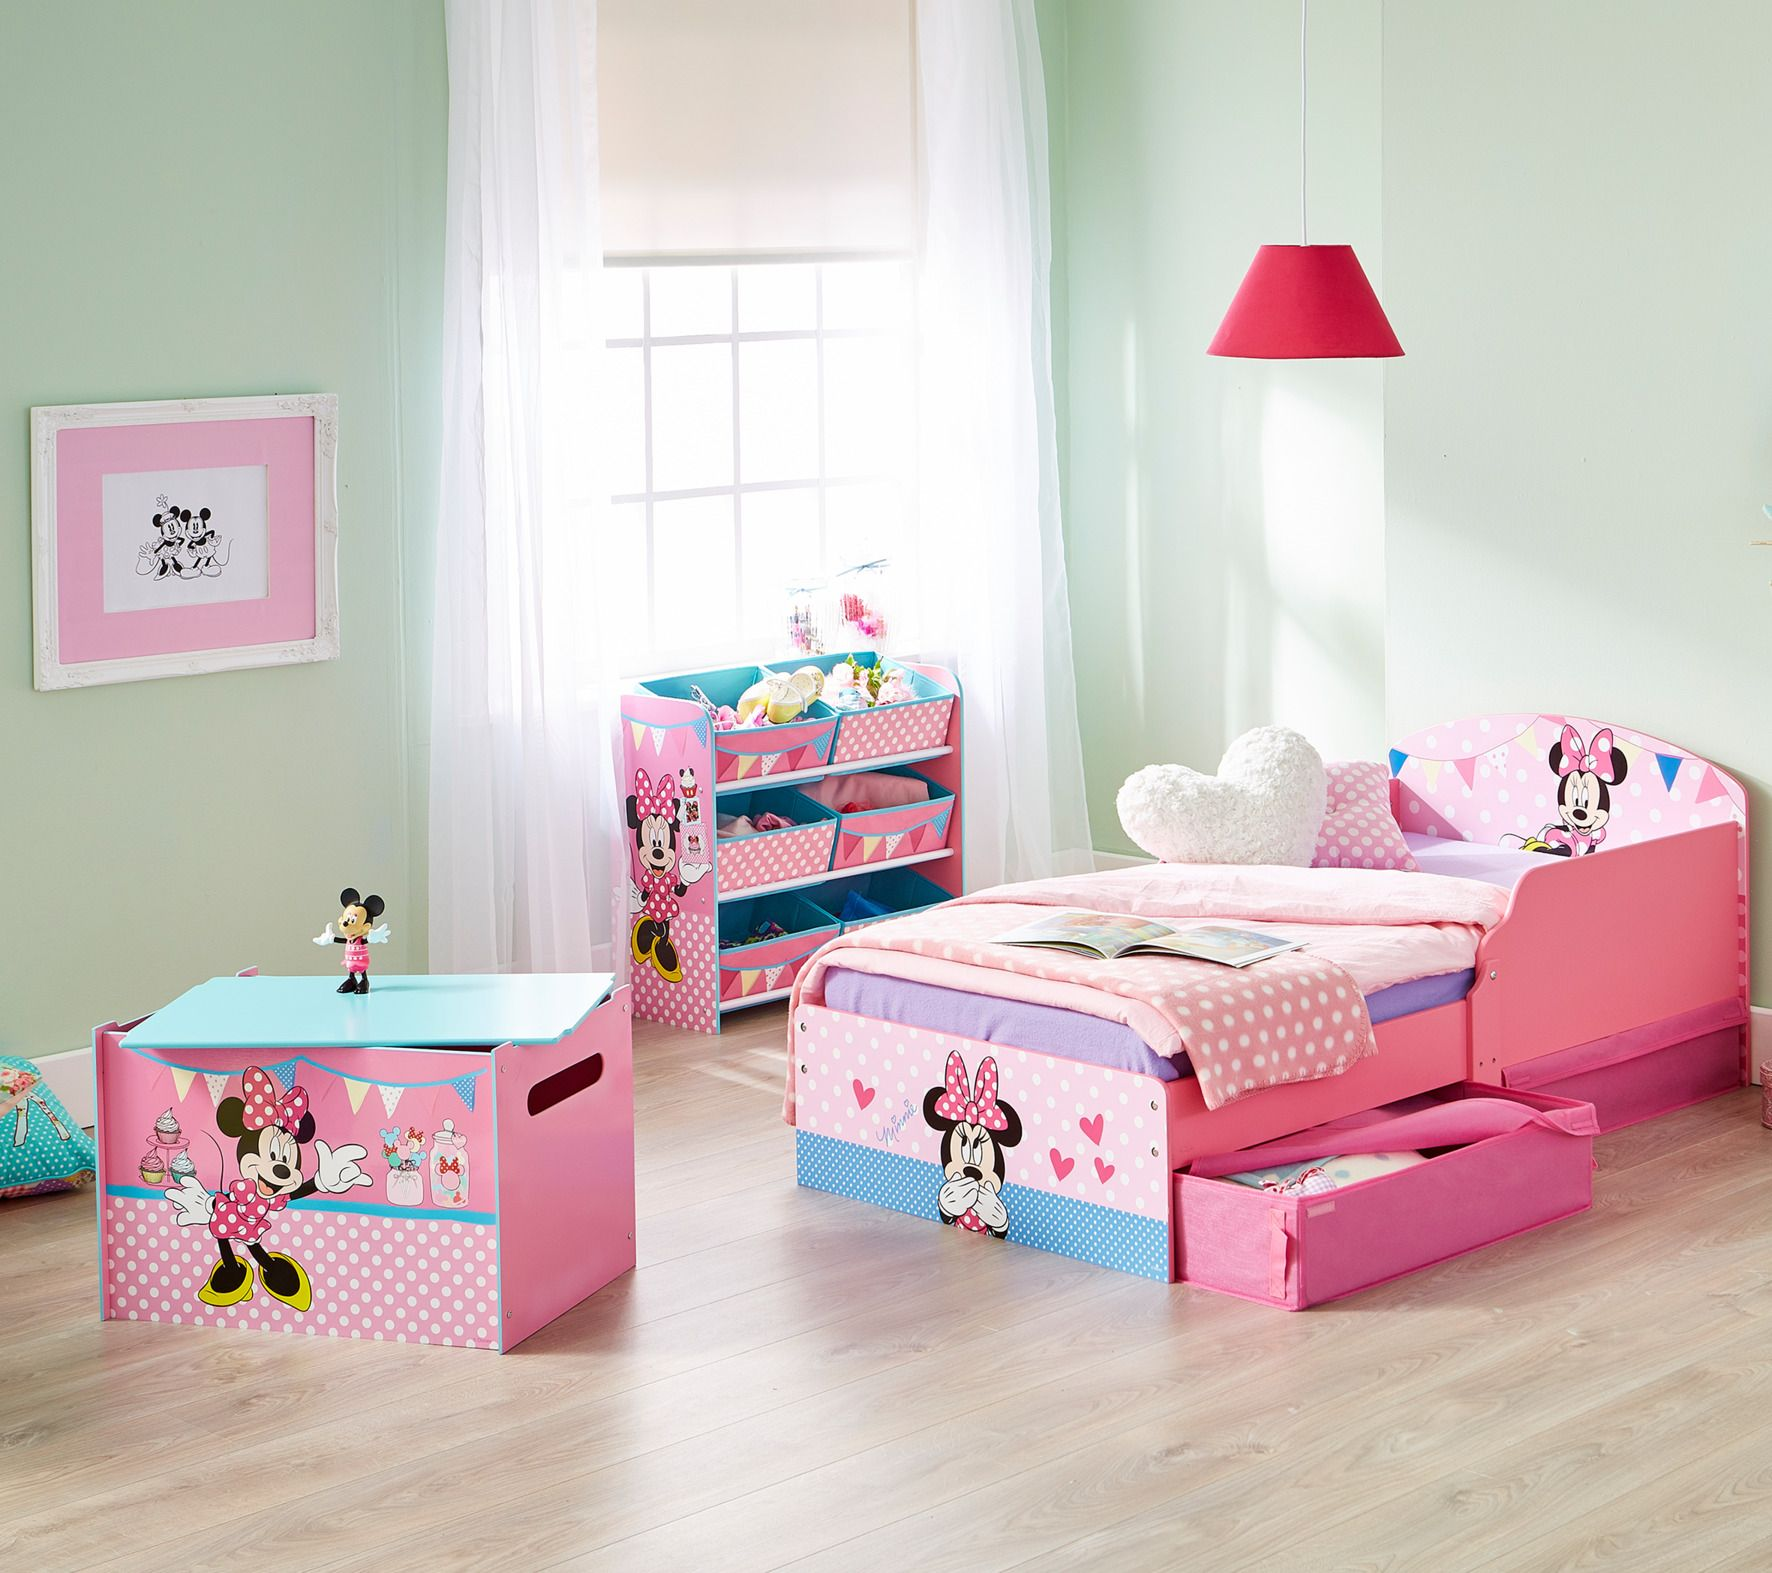 Cama para ni as minnie mouse un dormitorio infantil for Decoracion de dormitorios para ninas